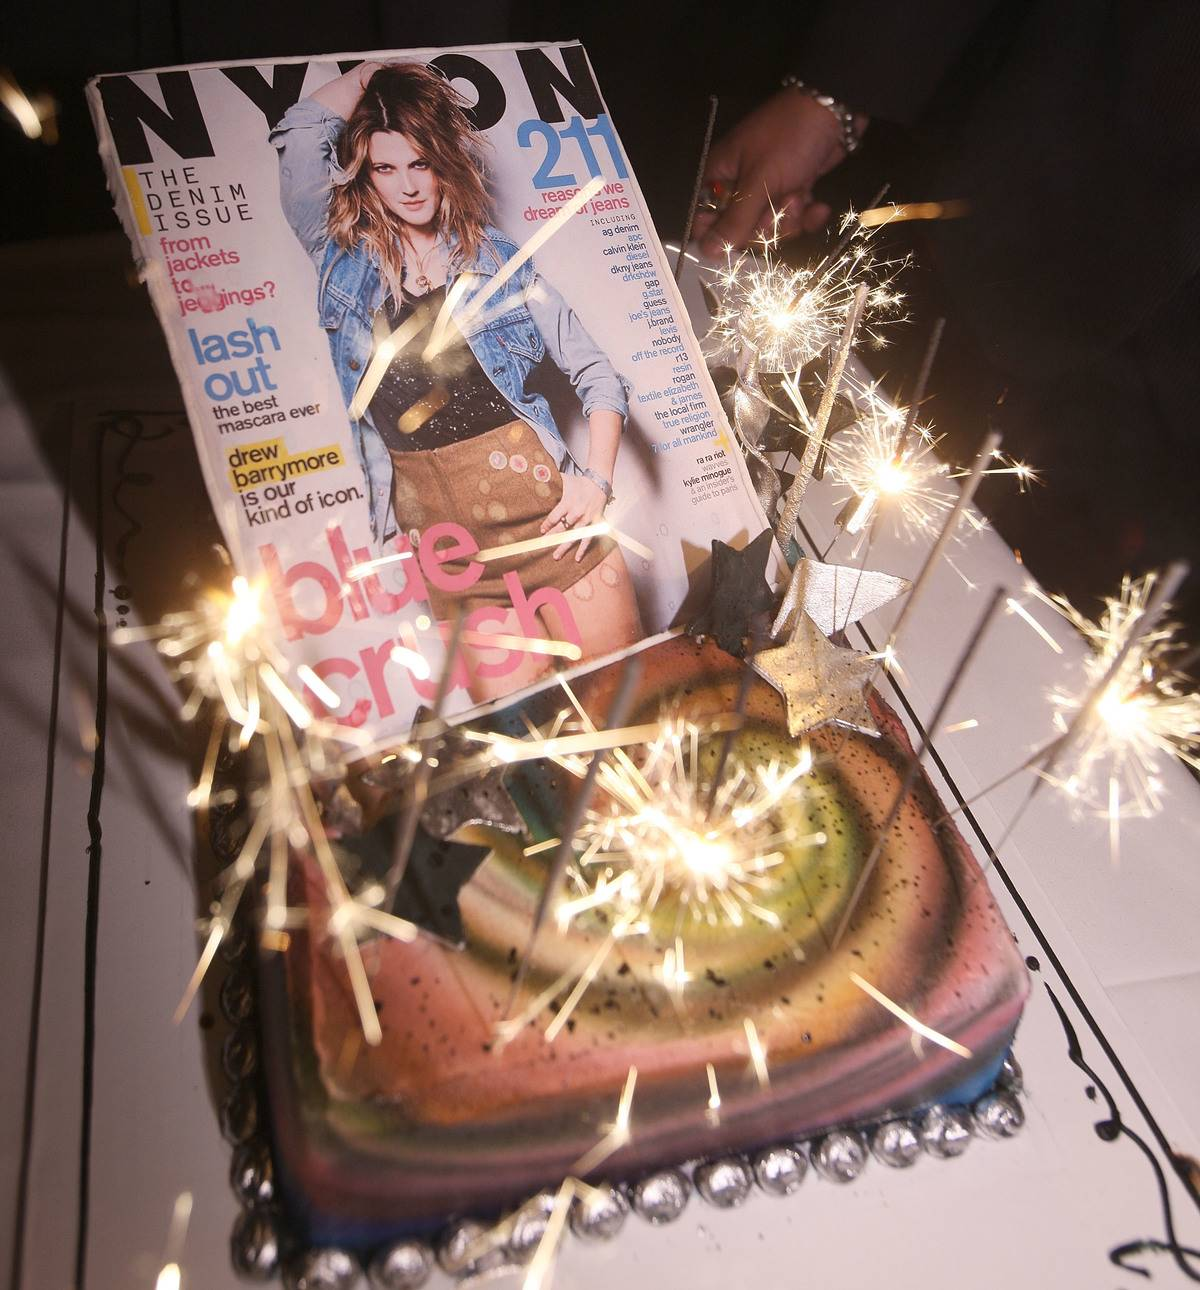 Nylon celebrates its birthday by placing the magazine on top of a cake with sparklers.